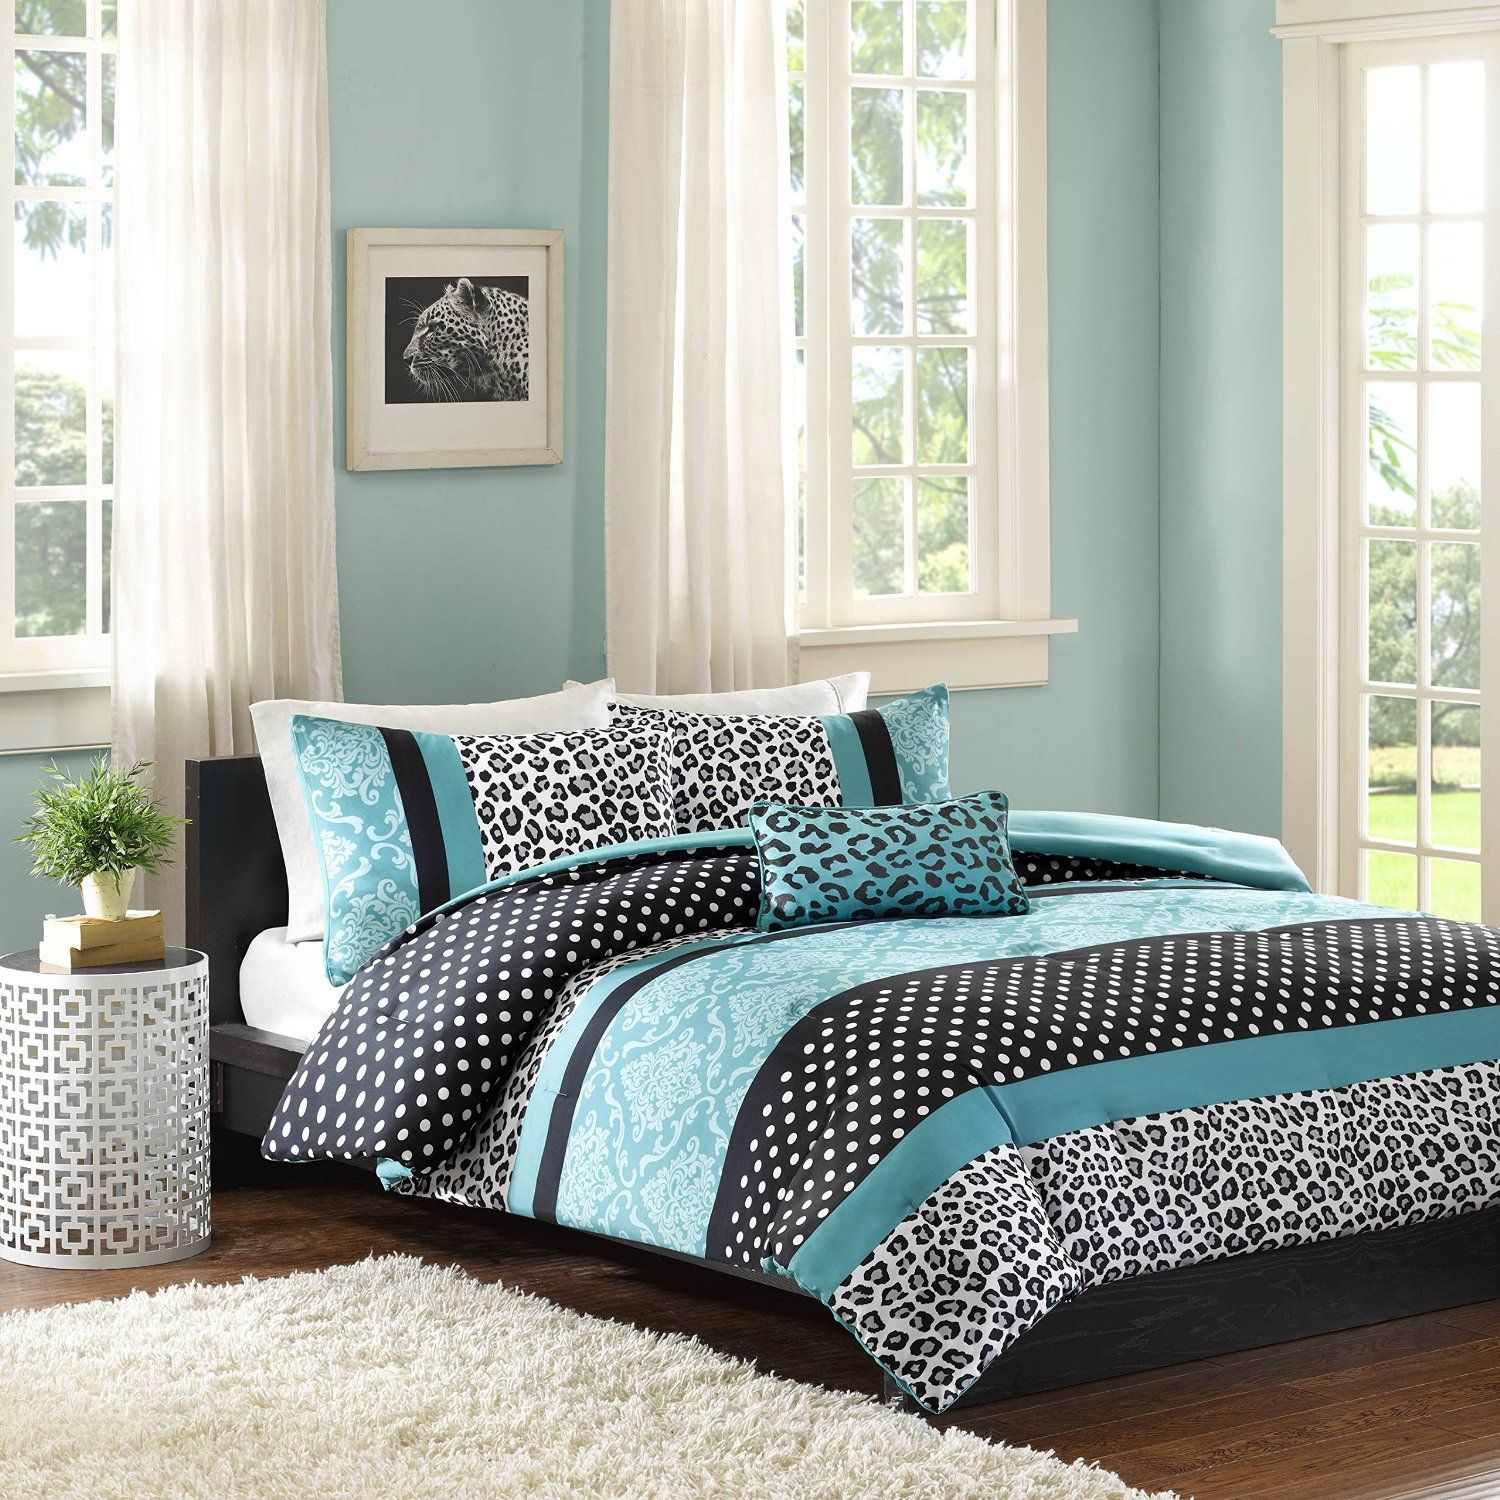 Tiffany Blue Damask Bedding - Mizone chloe 4 piece comforter set full queen teal